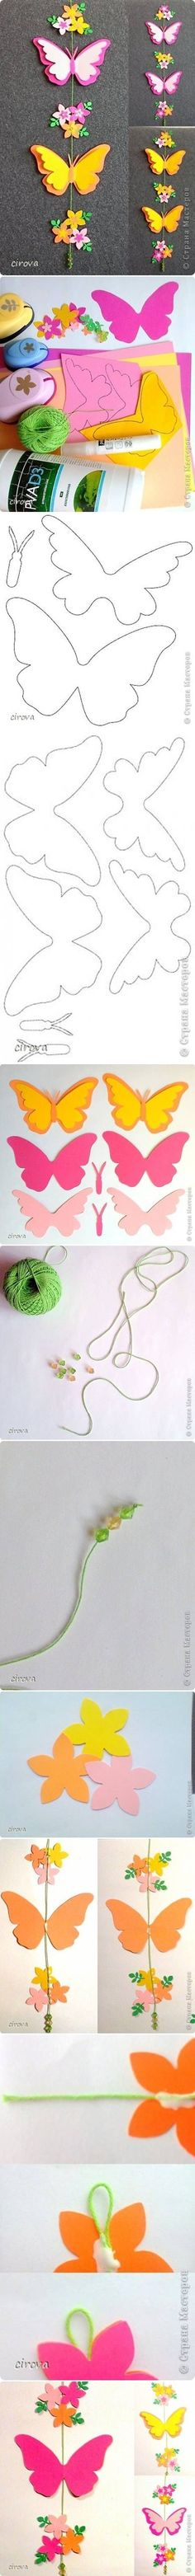 DIY Paper Butterfly Mobile